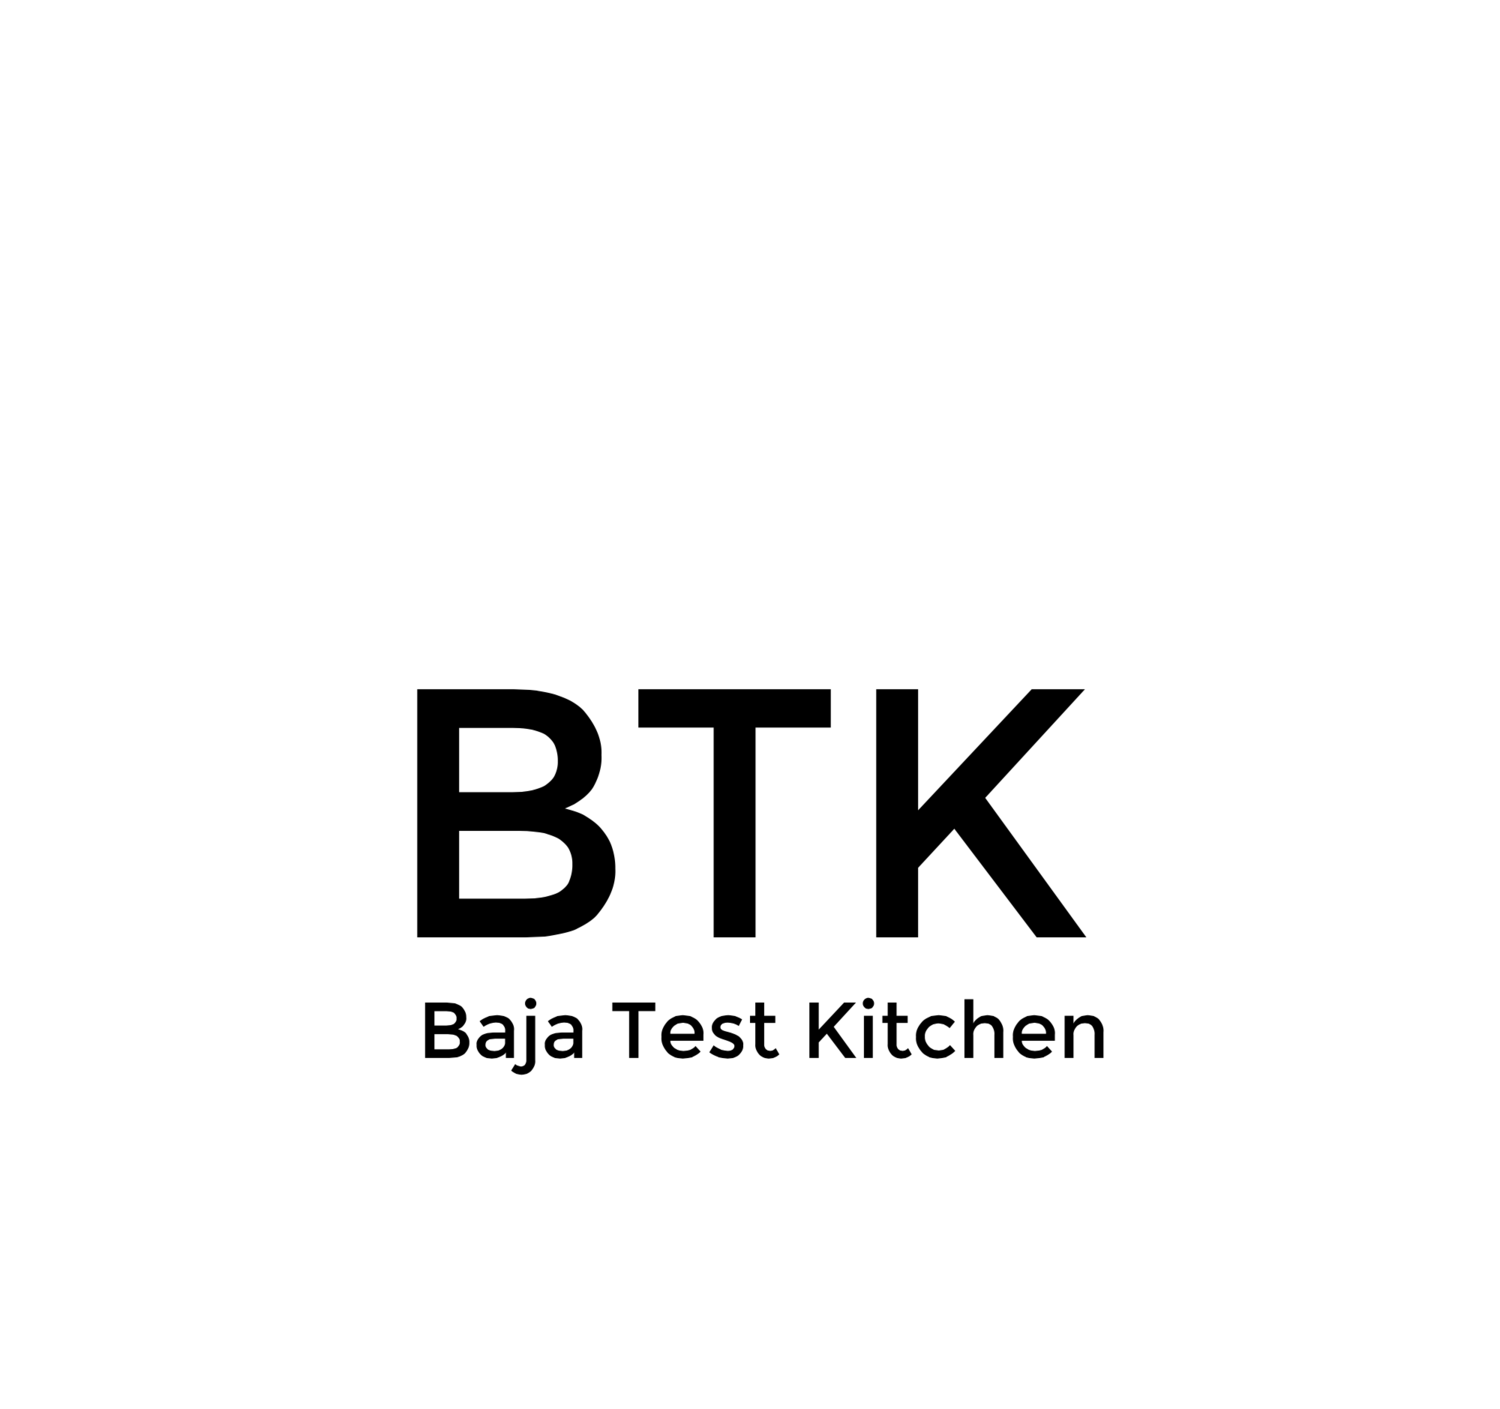 Baja Test Kitchen